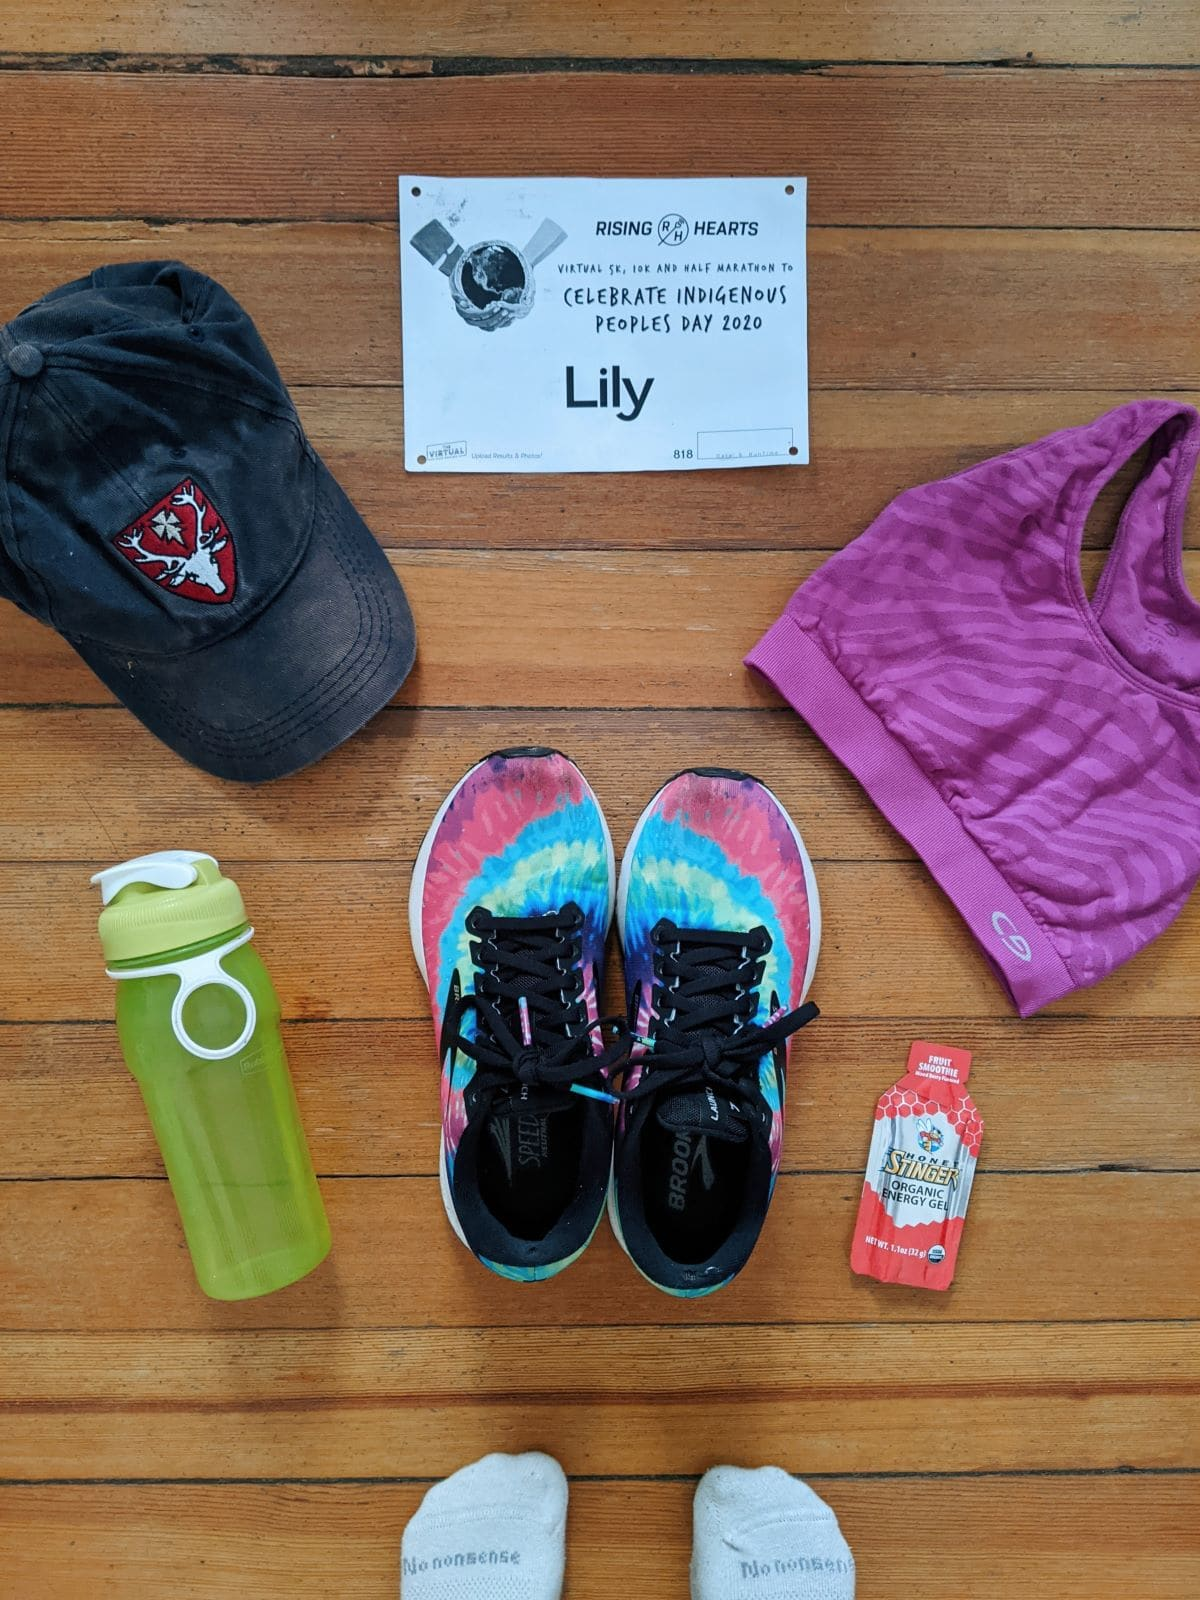 flatlay of running gear with a baseball cap, shoes, gel, sports bra, water bottle, and race bib